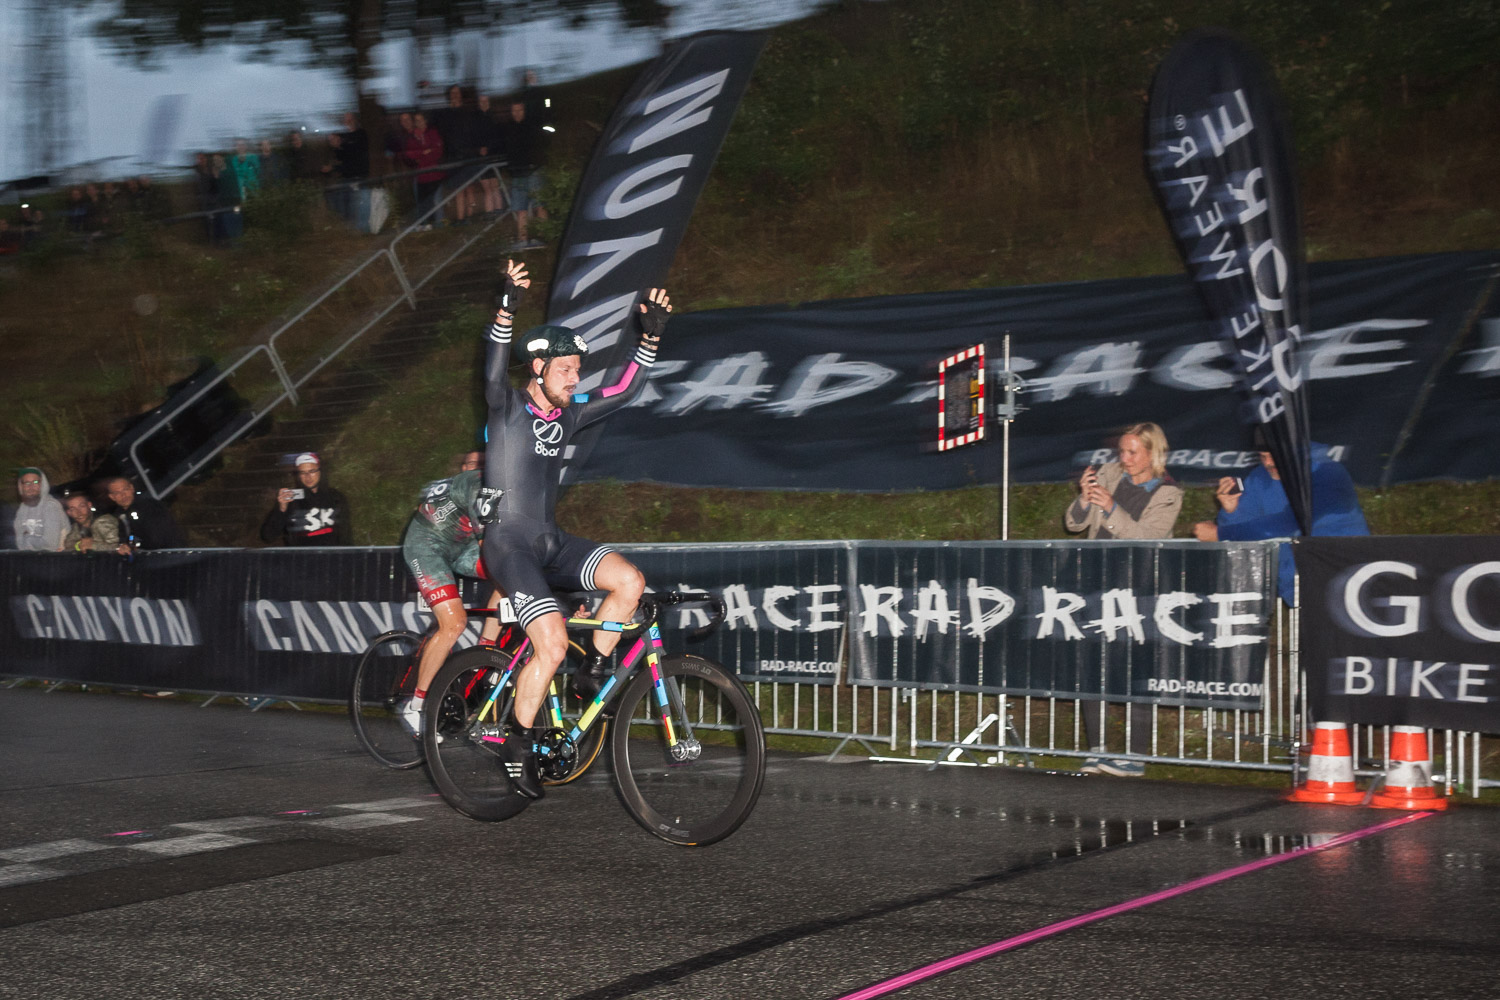 8bar-team-rad-race-last-man-standing-heidbergring-bike-race-43